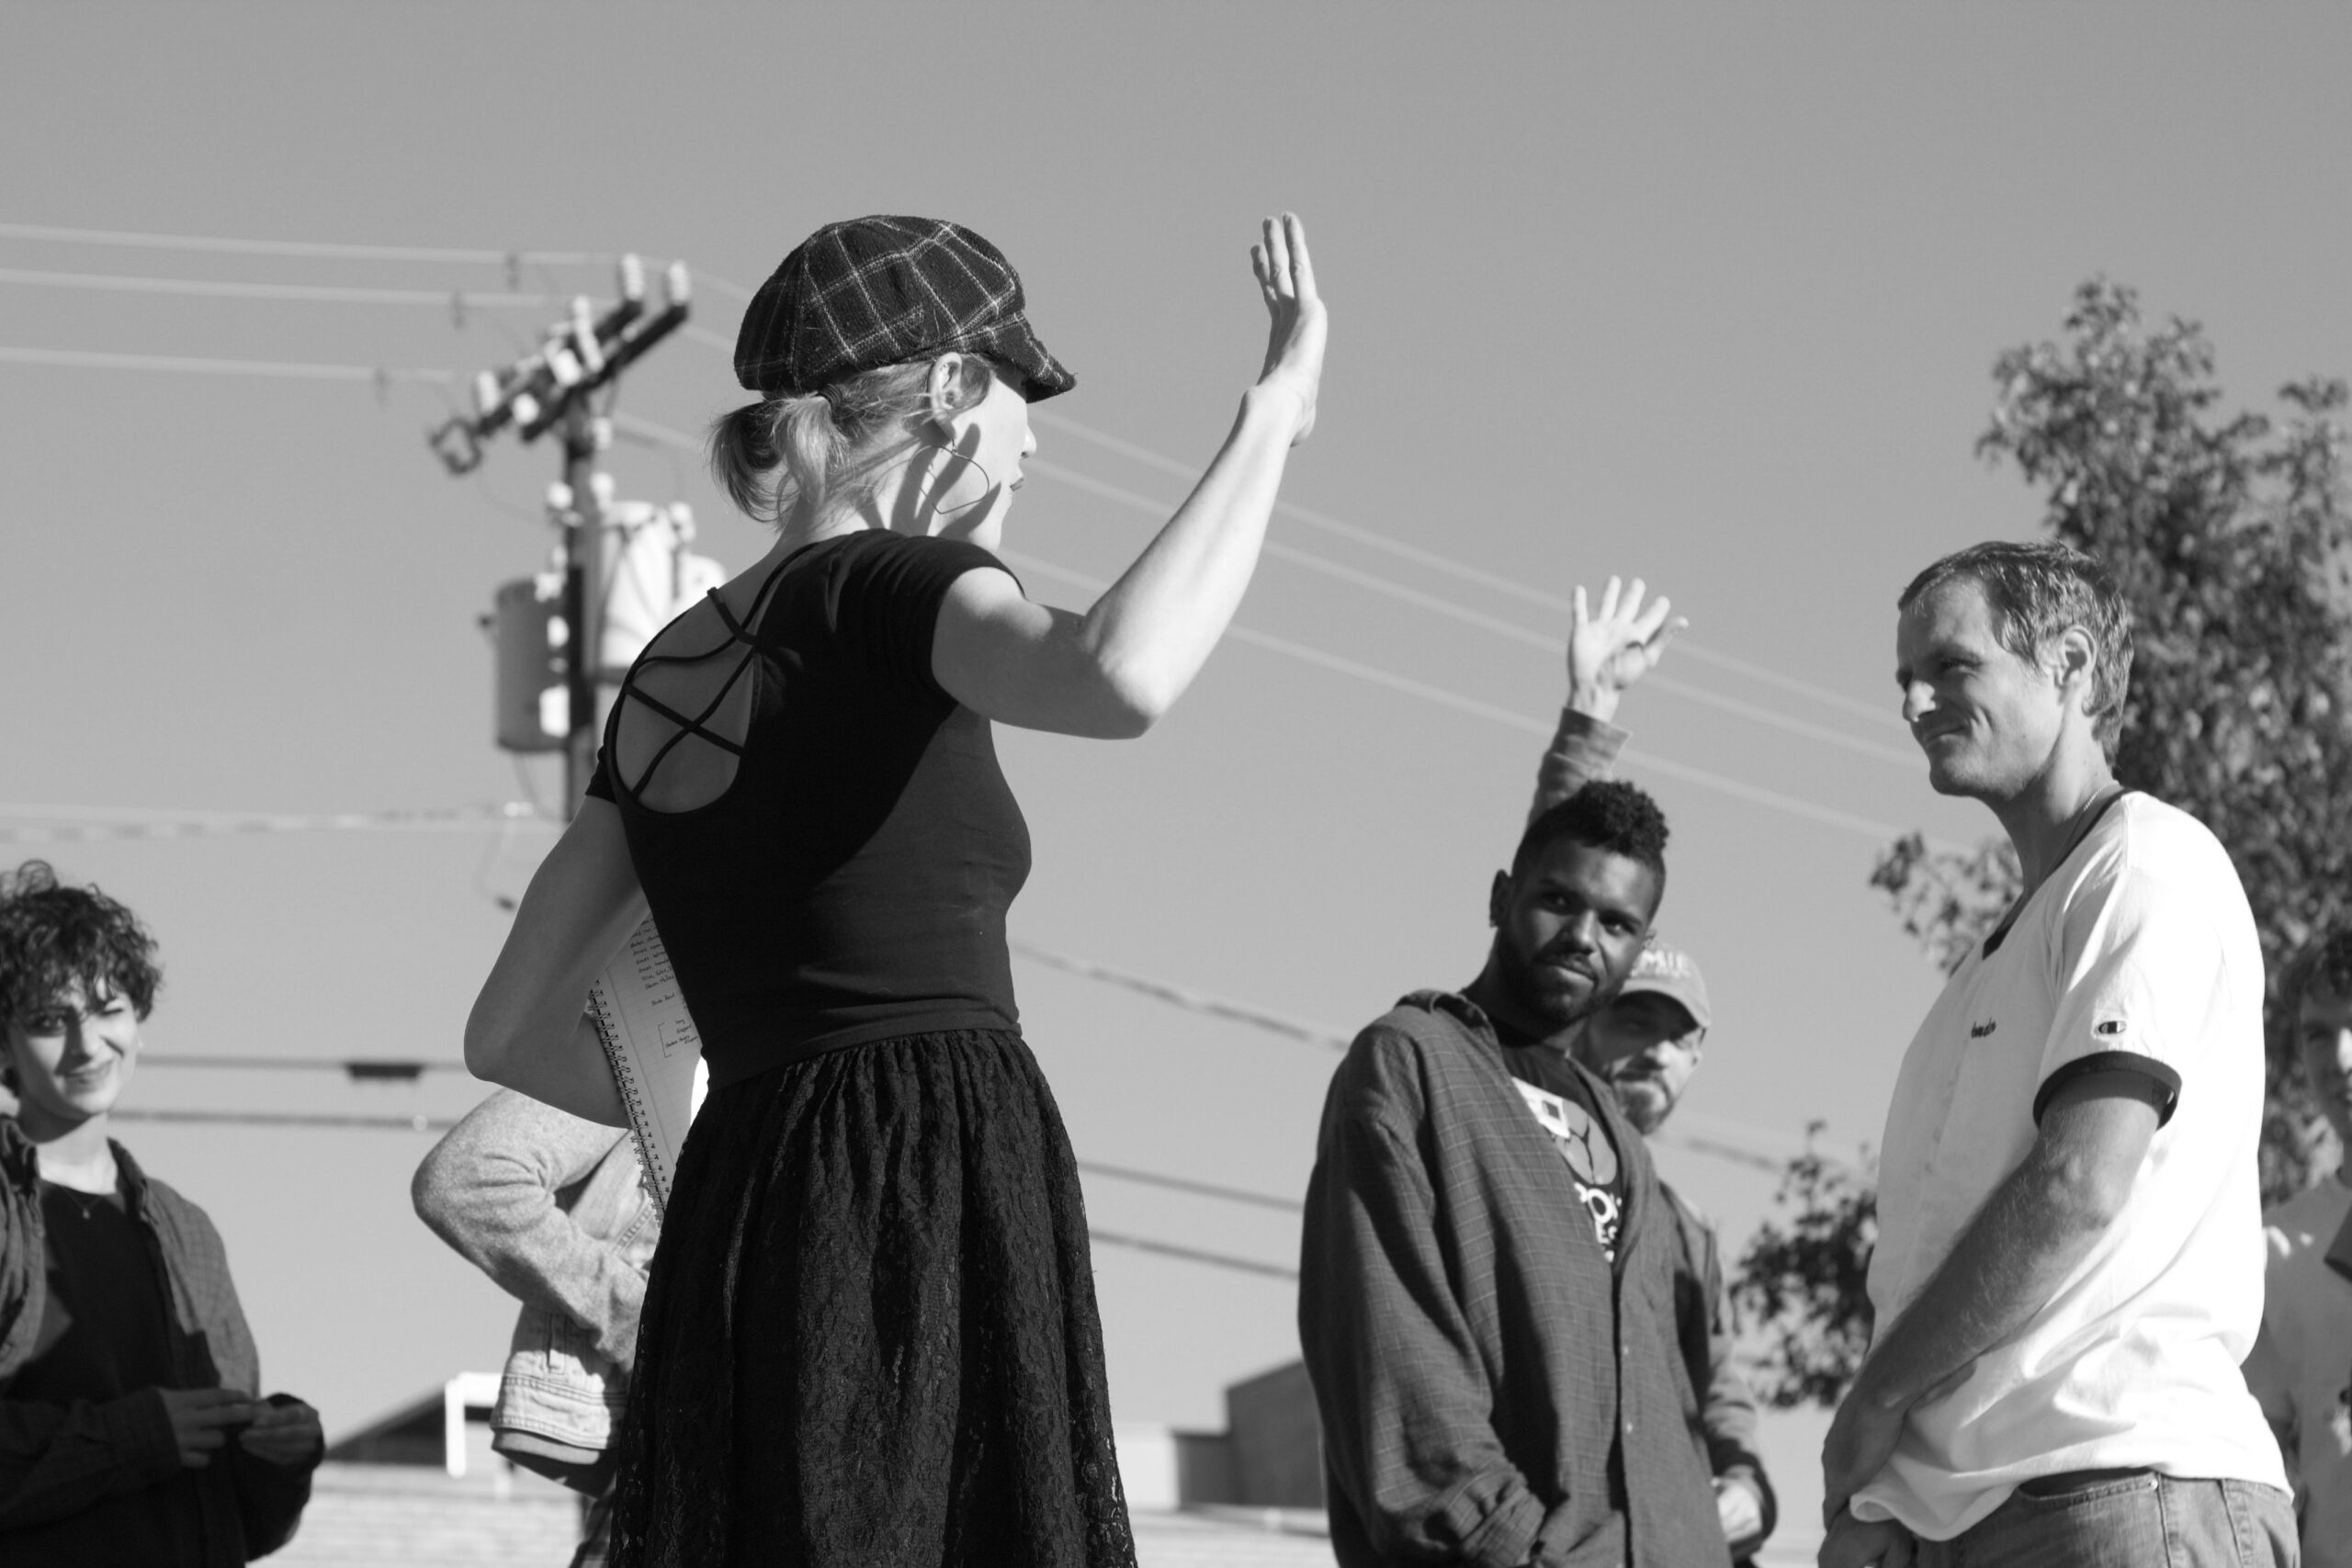 Black and white image taken from below eye level of a woman addressing a group of dancers outside during a rehearsal